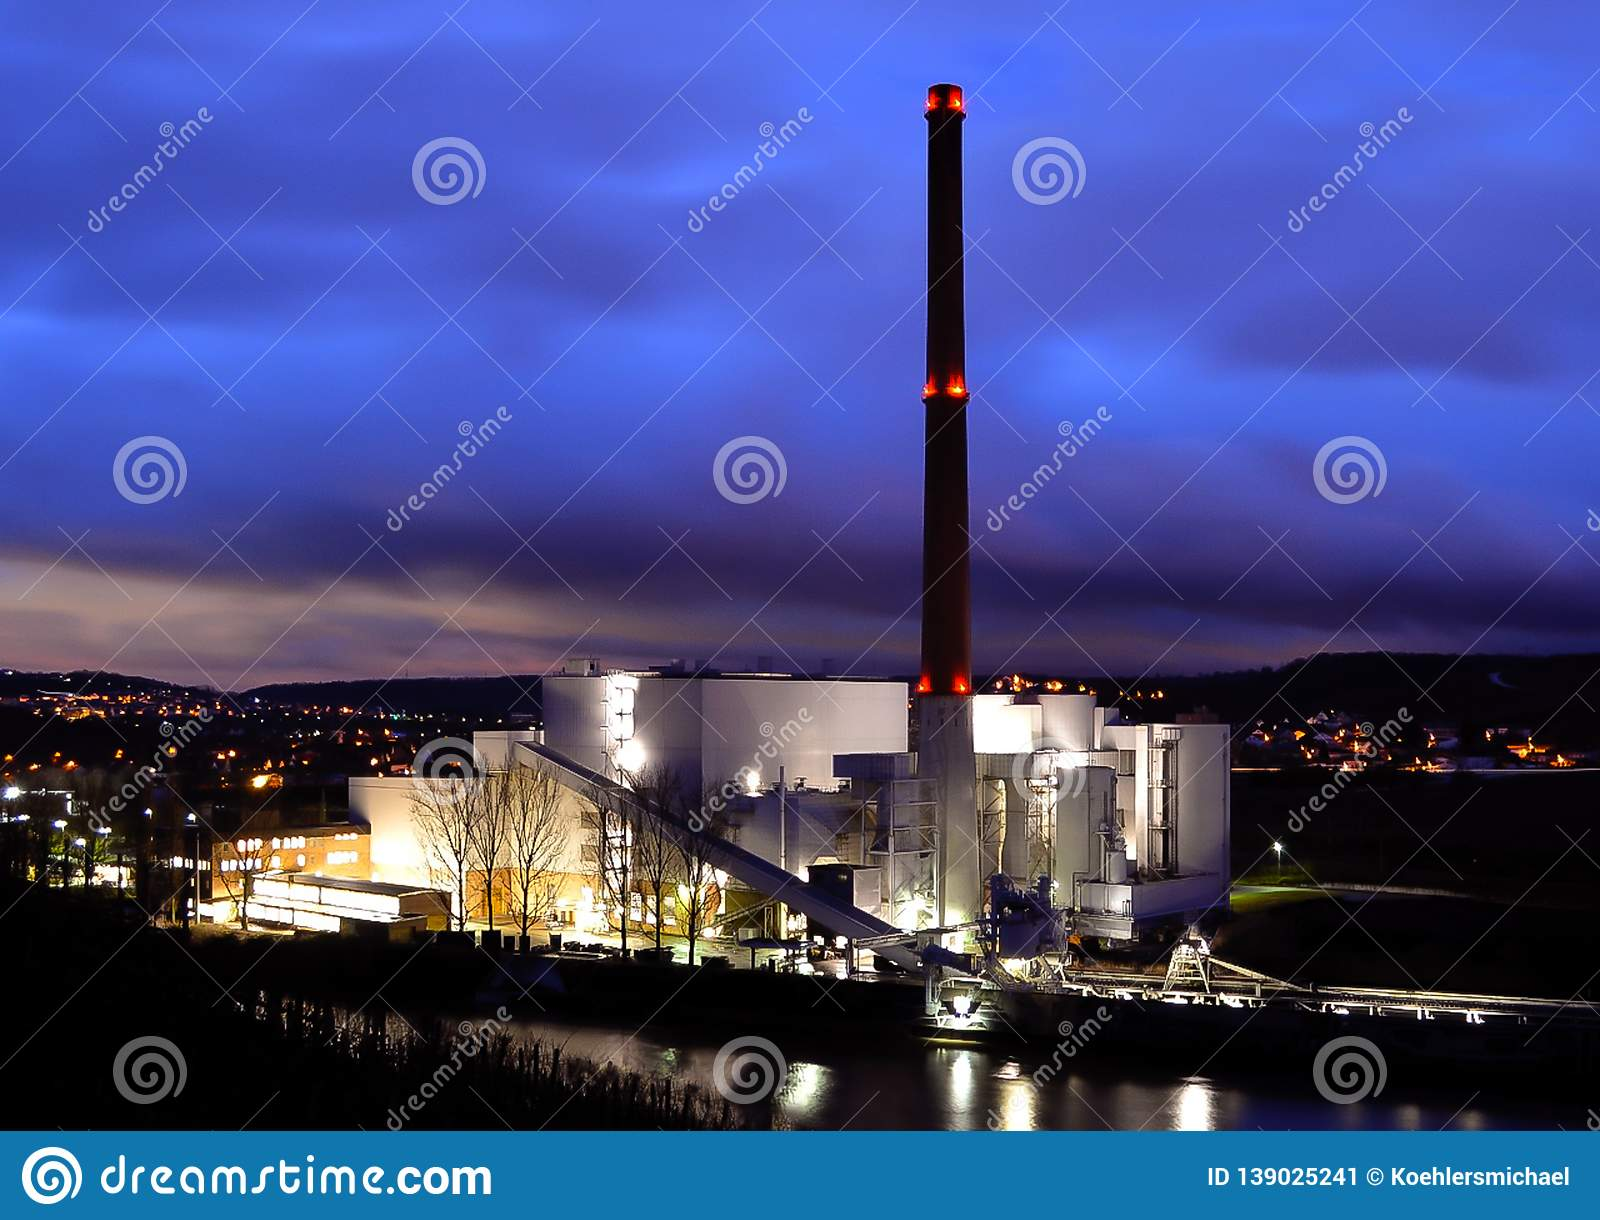 Coal-fired power plant at night with cloudy sky